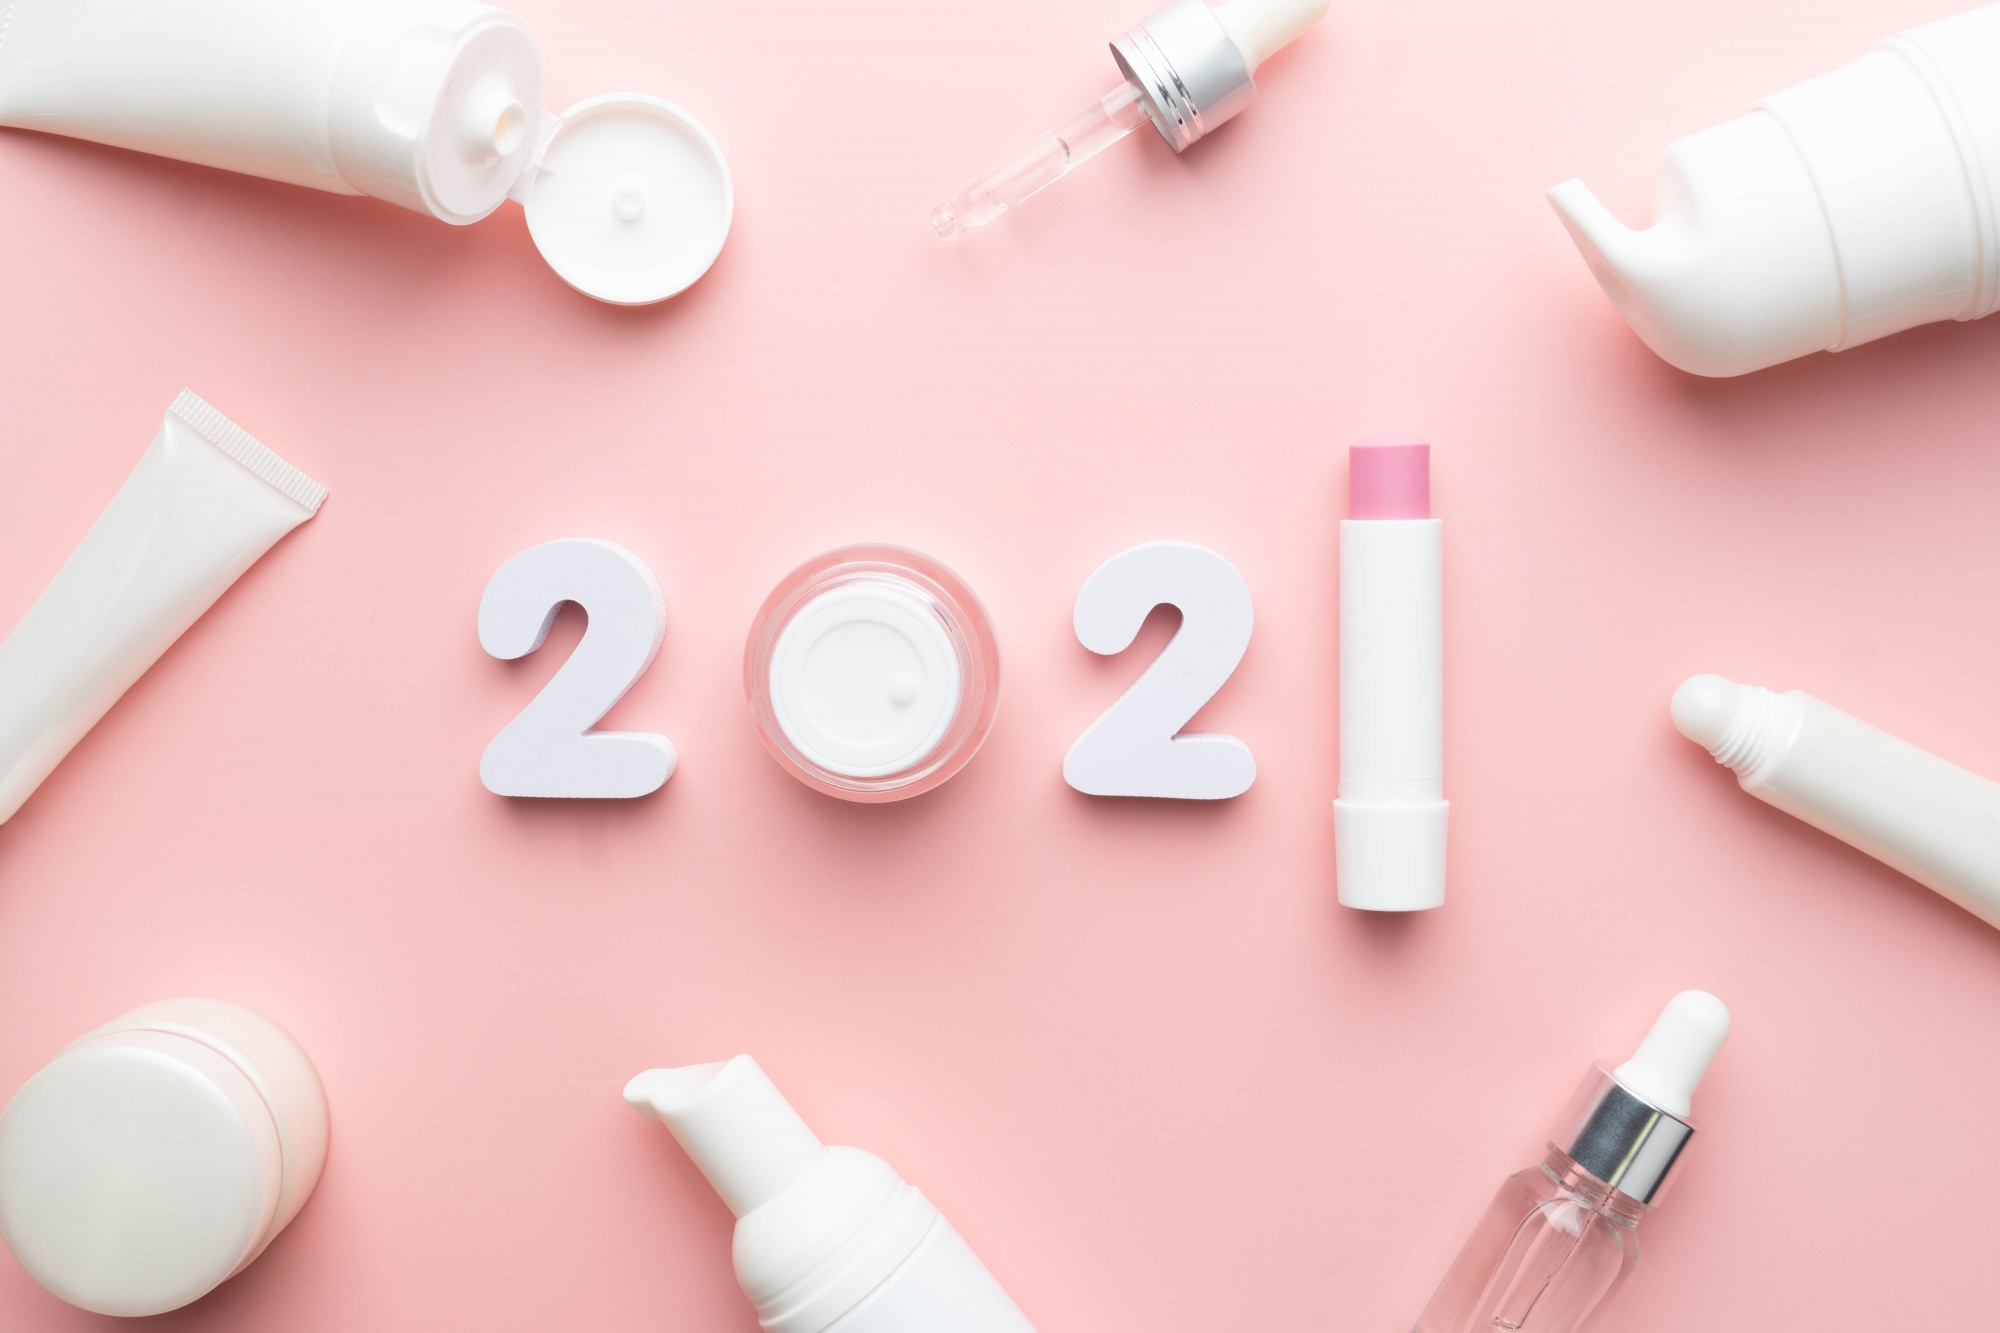 various beauty products buzzworthy beauty products